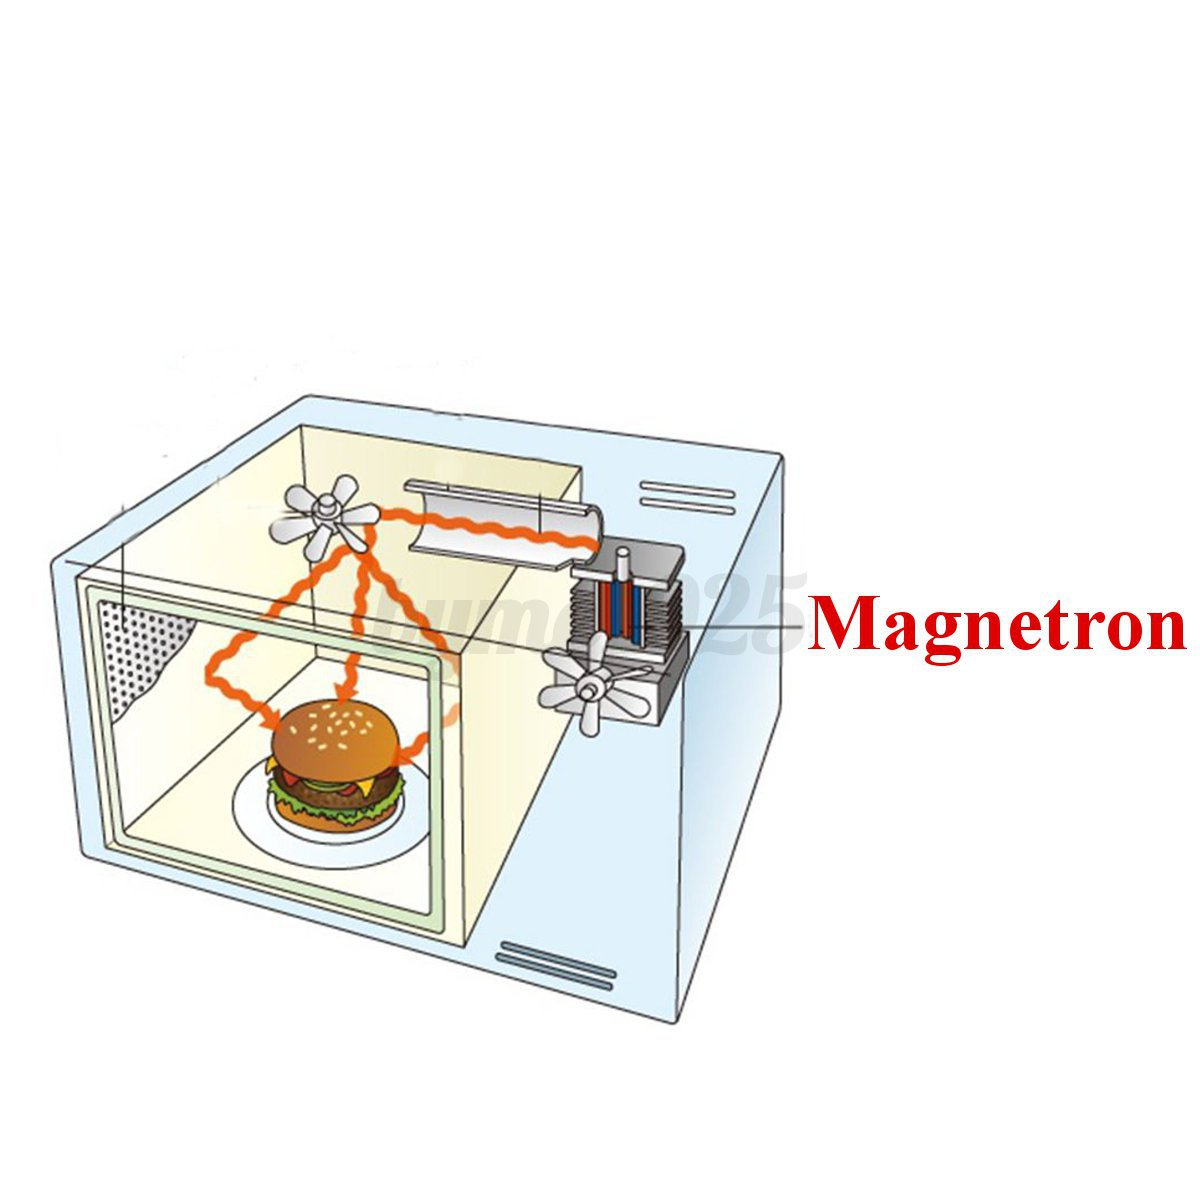 Ground Resistance Testers Hauppauge Ny : Replacement microwave oven magnetron for midea witol m